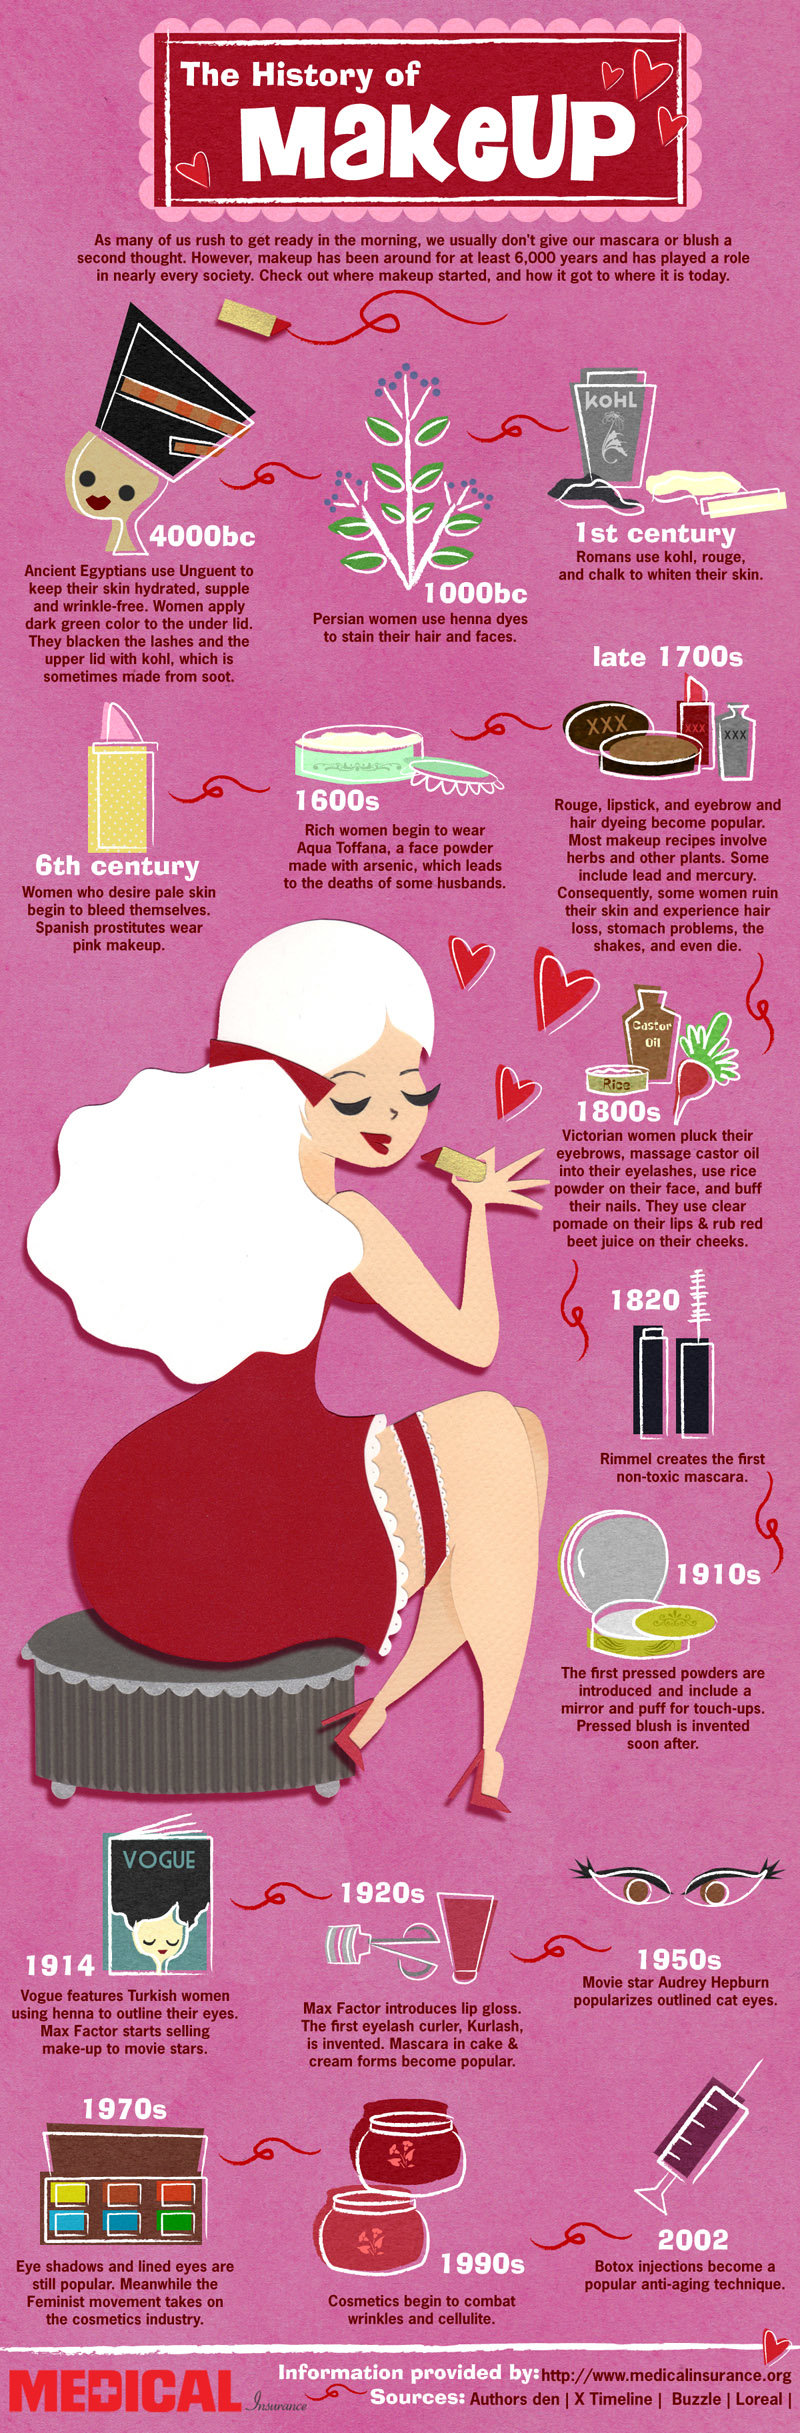 the history of #Makeup #infographic